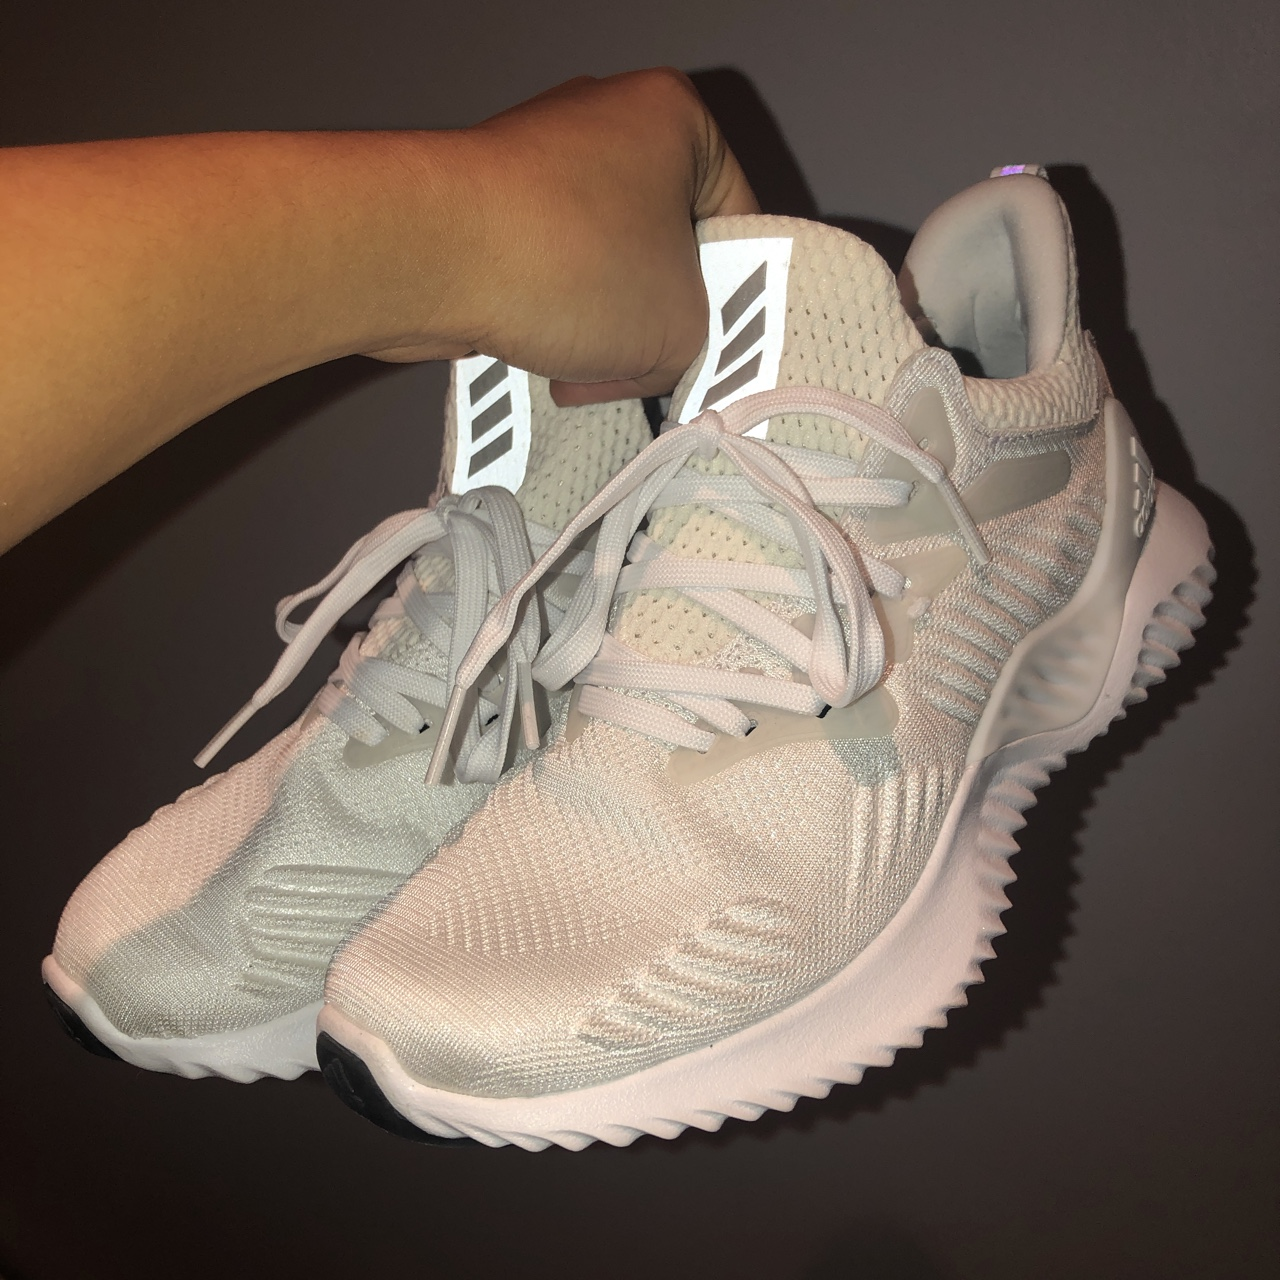 White Adidas bounce trainers size 3.5, worn once to...